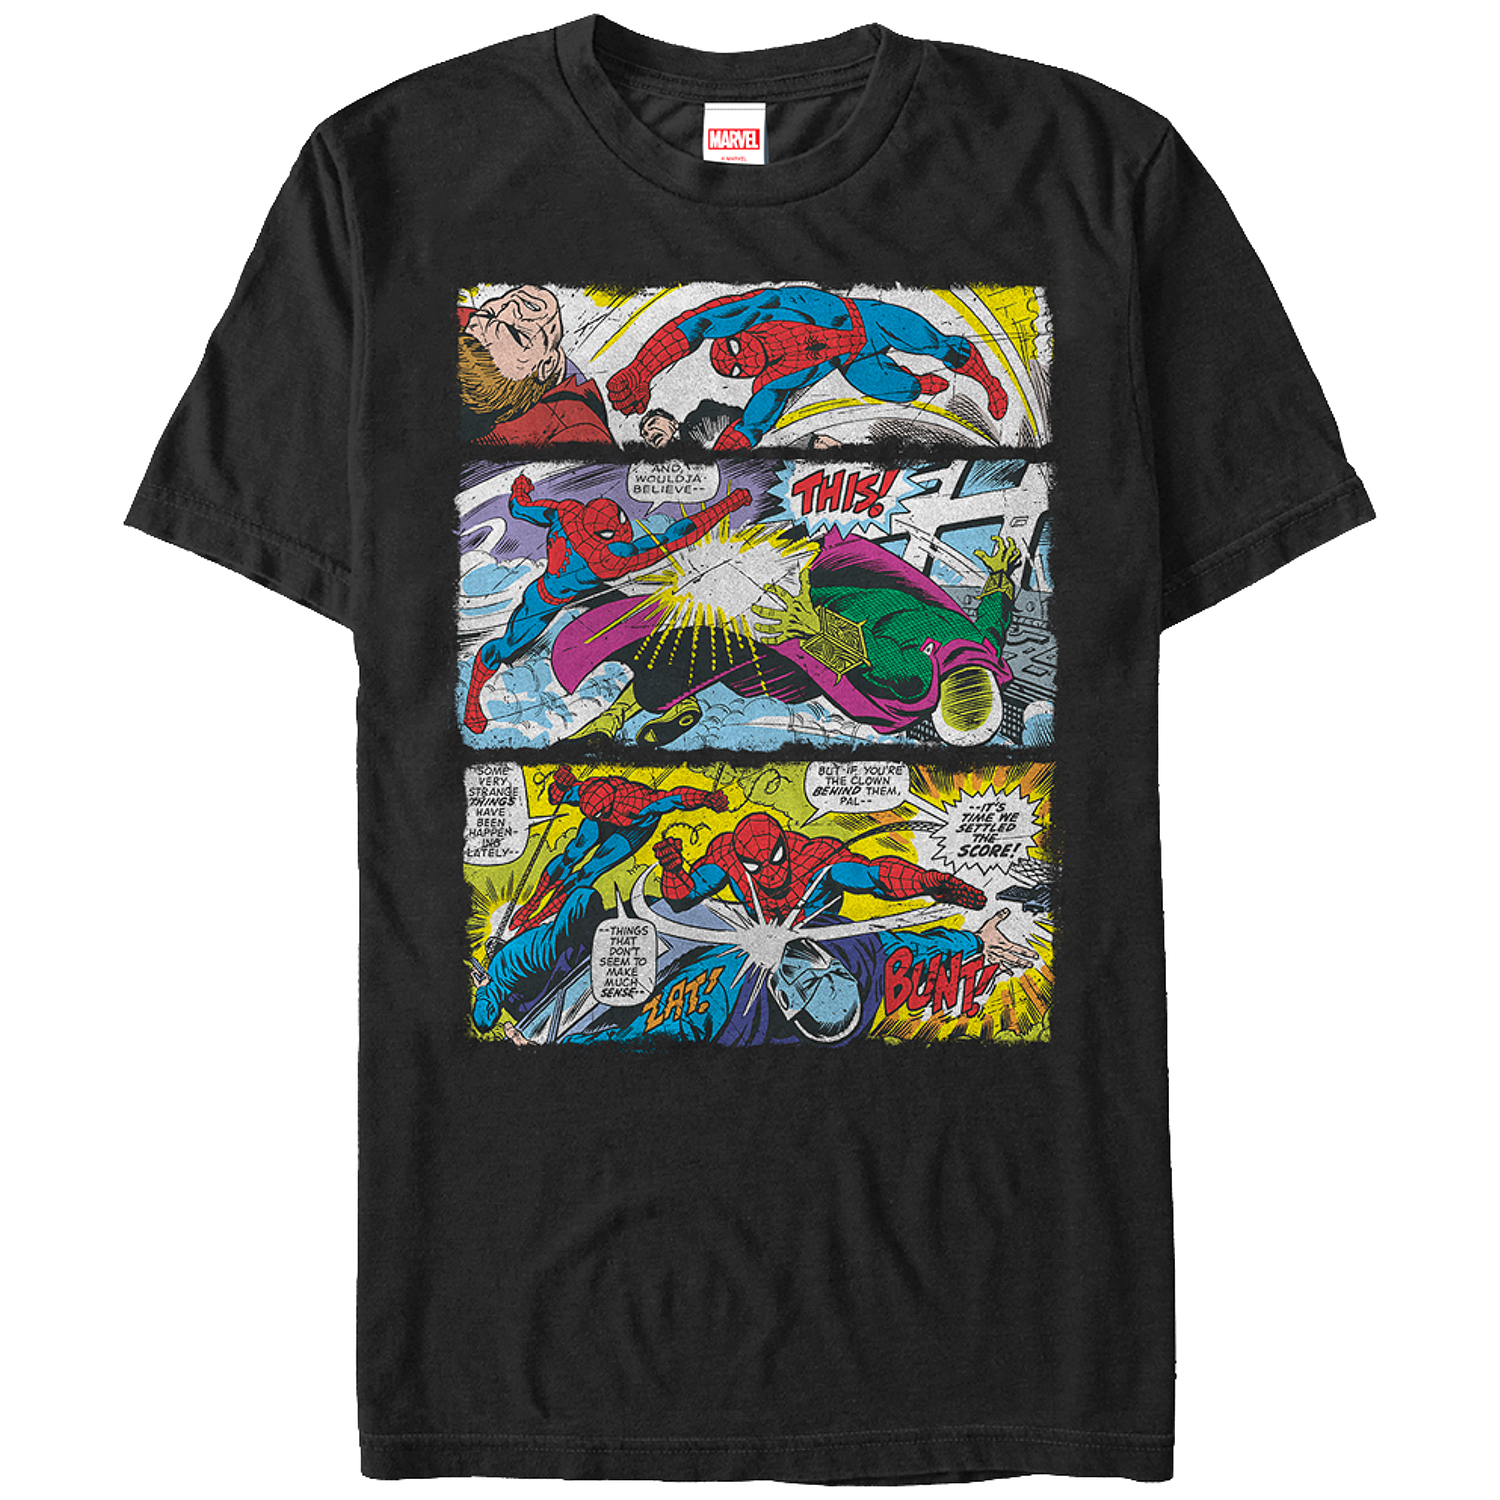 air-jordan-1-origin-story-spiderman-sneaker-tee-shirt-2